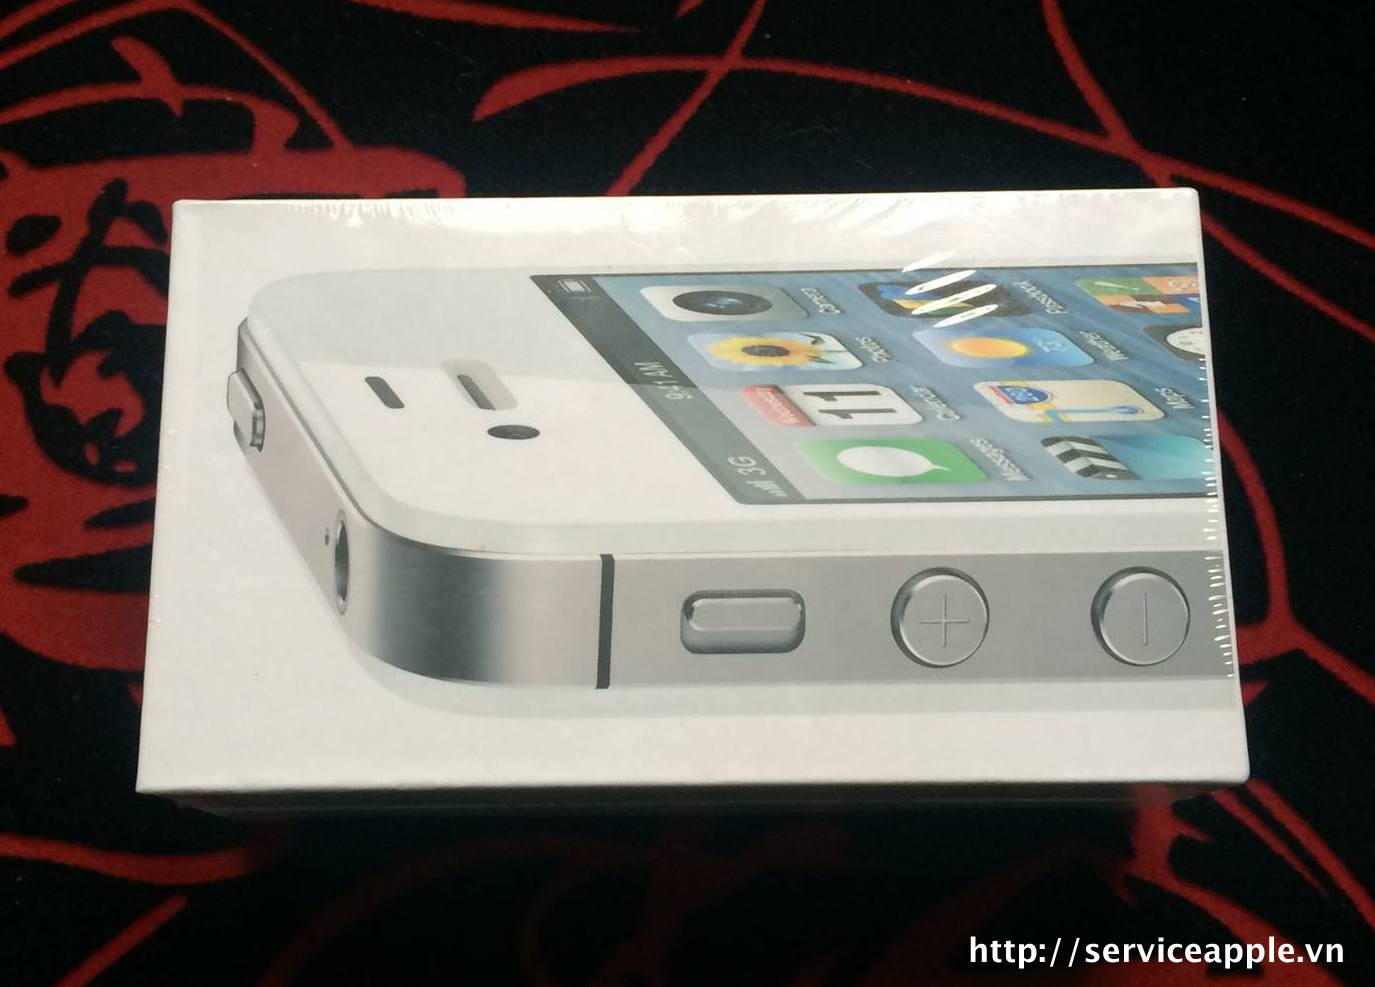 iPhone 4s trang 16gb.jpg